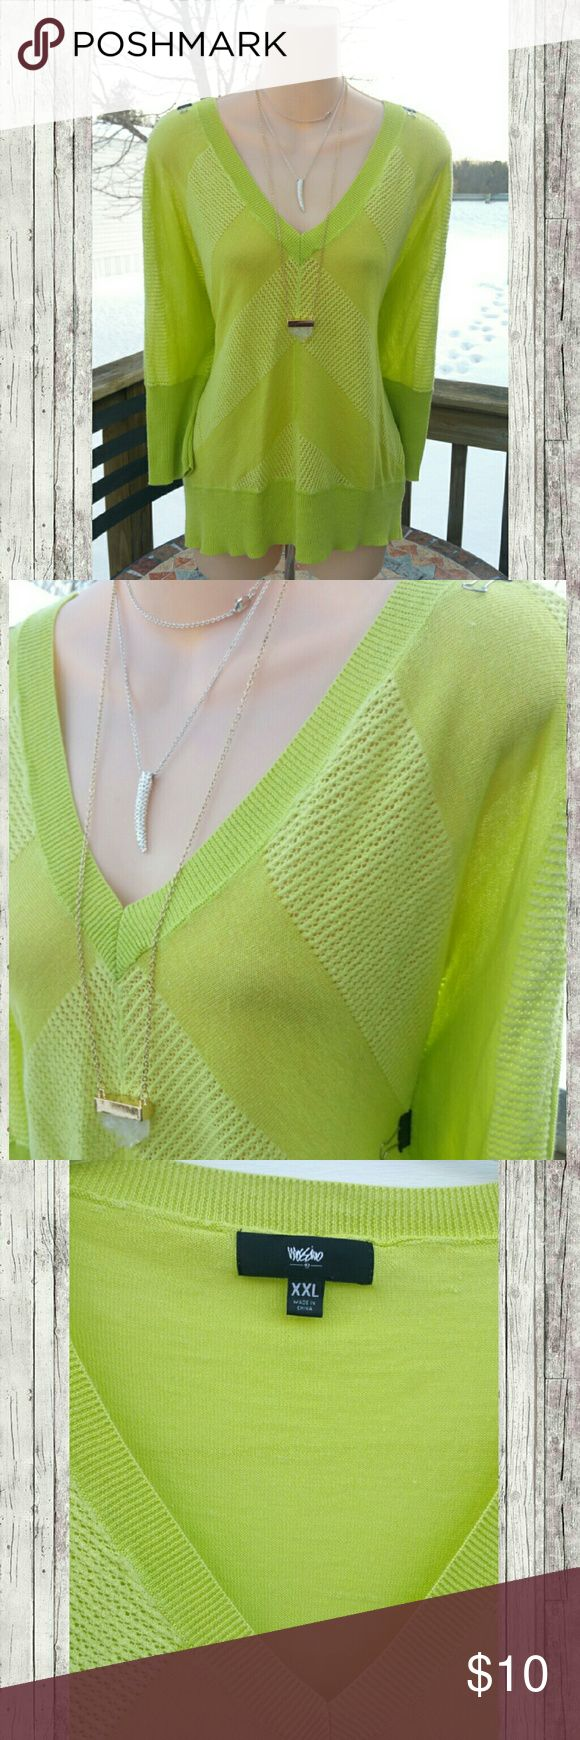 Bright Green vneck stretchy knit top shirt Bundle for discounts!  Eye catching green batwing top in XXL. Bust approx 42-44 inches. Lightweight stretchy material..   #ashleisgoodies #top #shirt #blouse #casual #vneck #green #neon #mossimo #batwing #dolman #butterfly #plussize #plus #xxl #2XL Mossimo Supply Co. Tops